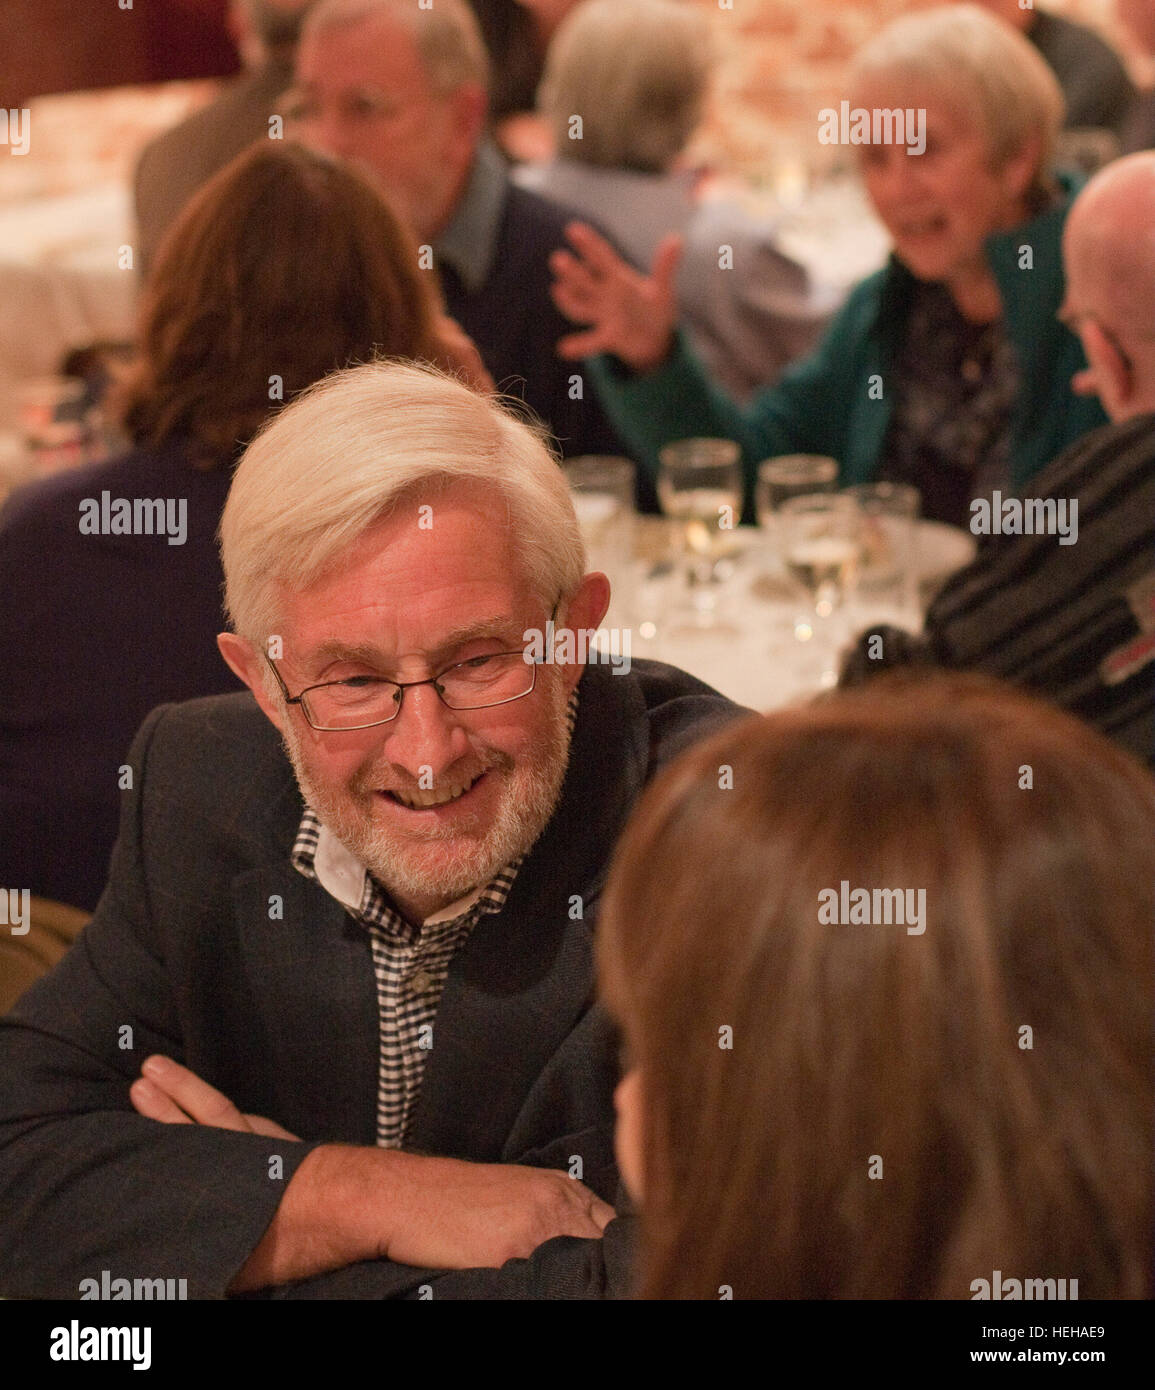 Senior man smiling and looking relaxed at a cafe/café/restaurant table Stock Photo